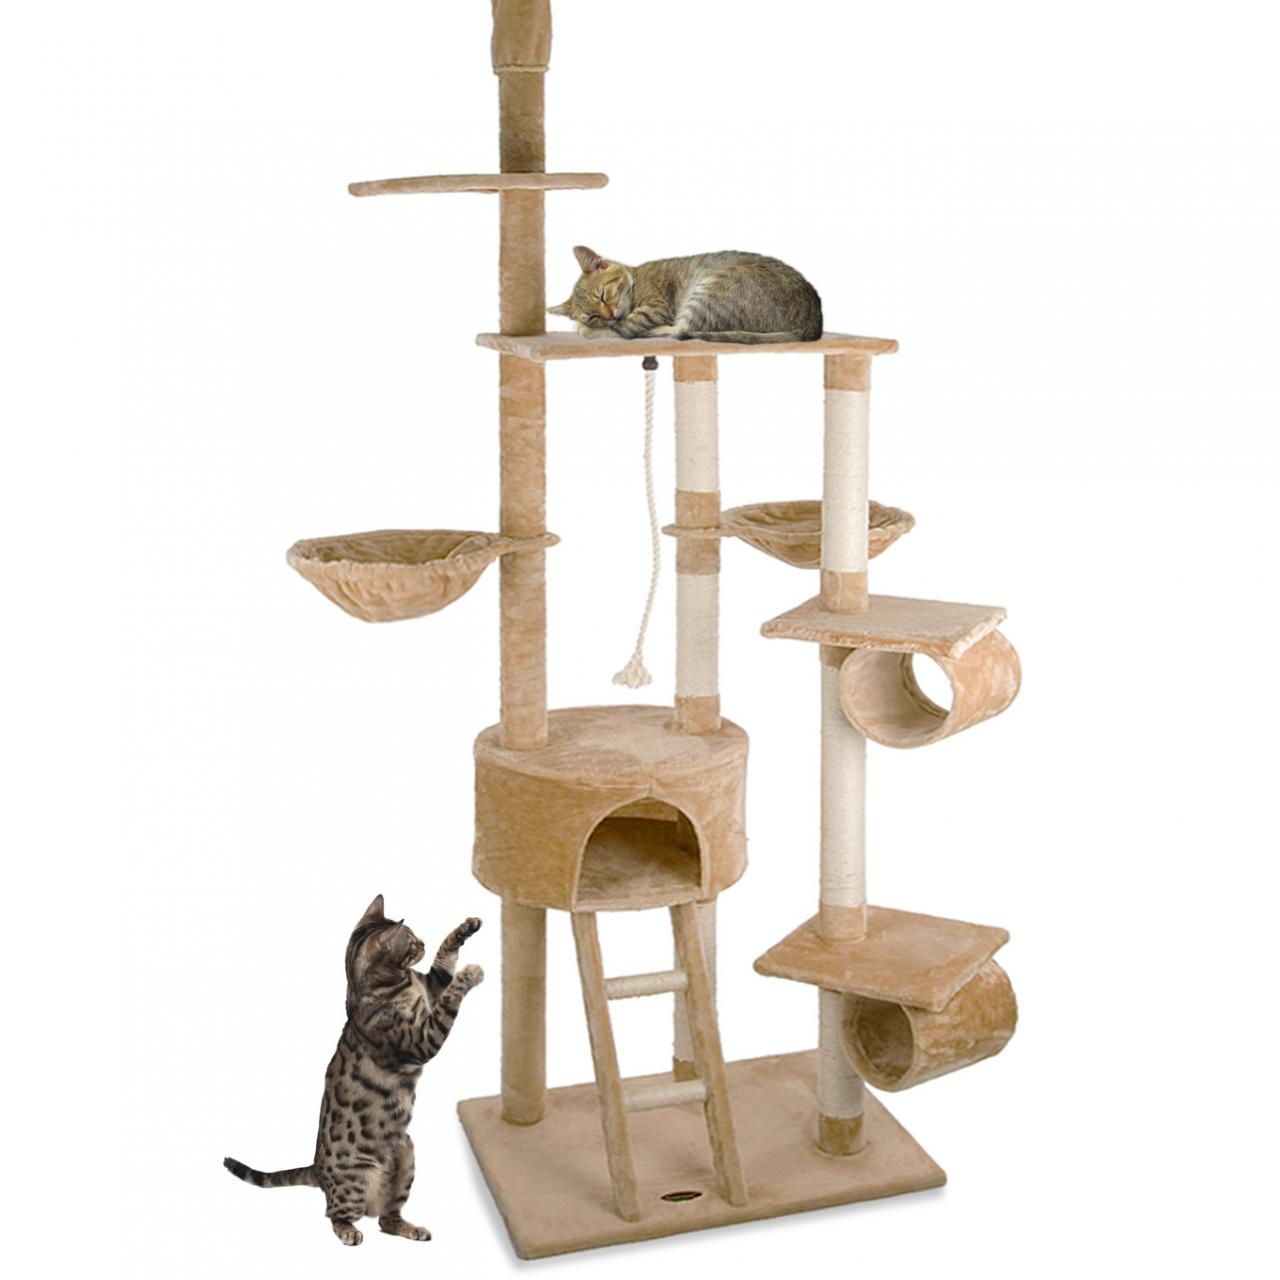 arbre chat griffoir grattoir 230 250cm diverses couleurs happypet cat005 2 ebay. Black Bedroom Furniture Sets. Home Design Ideas